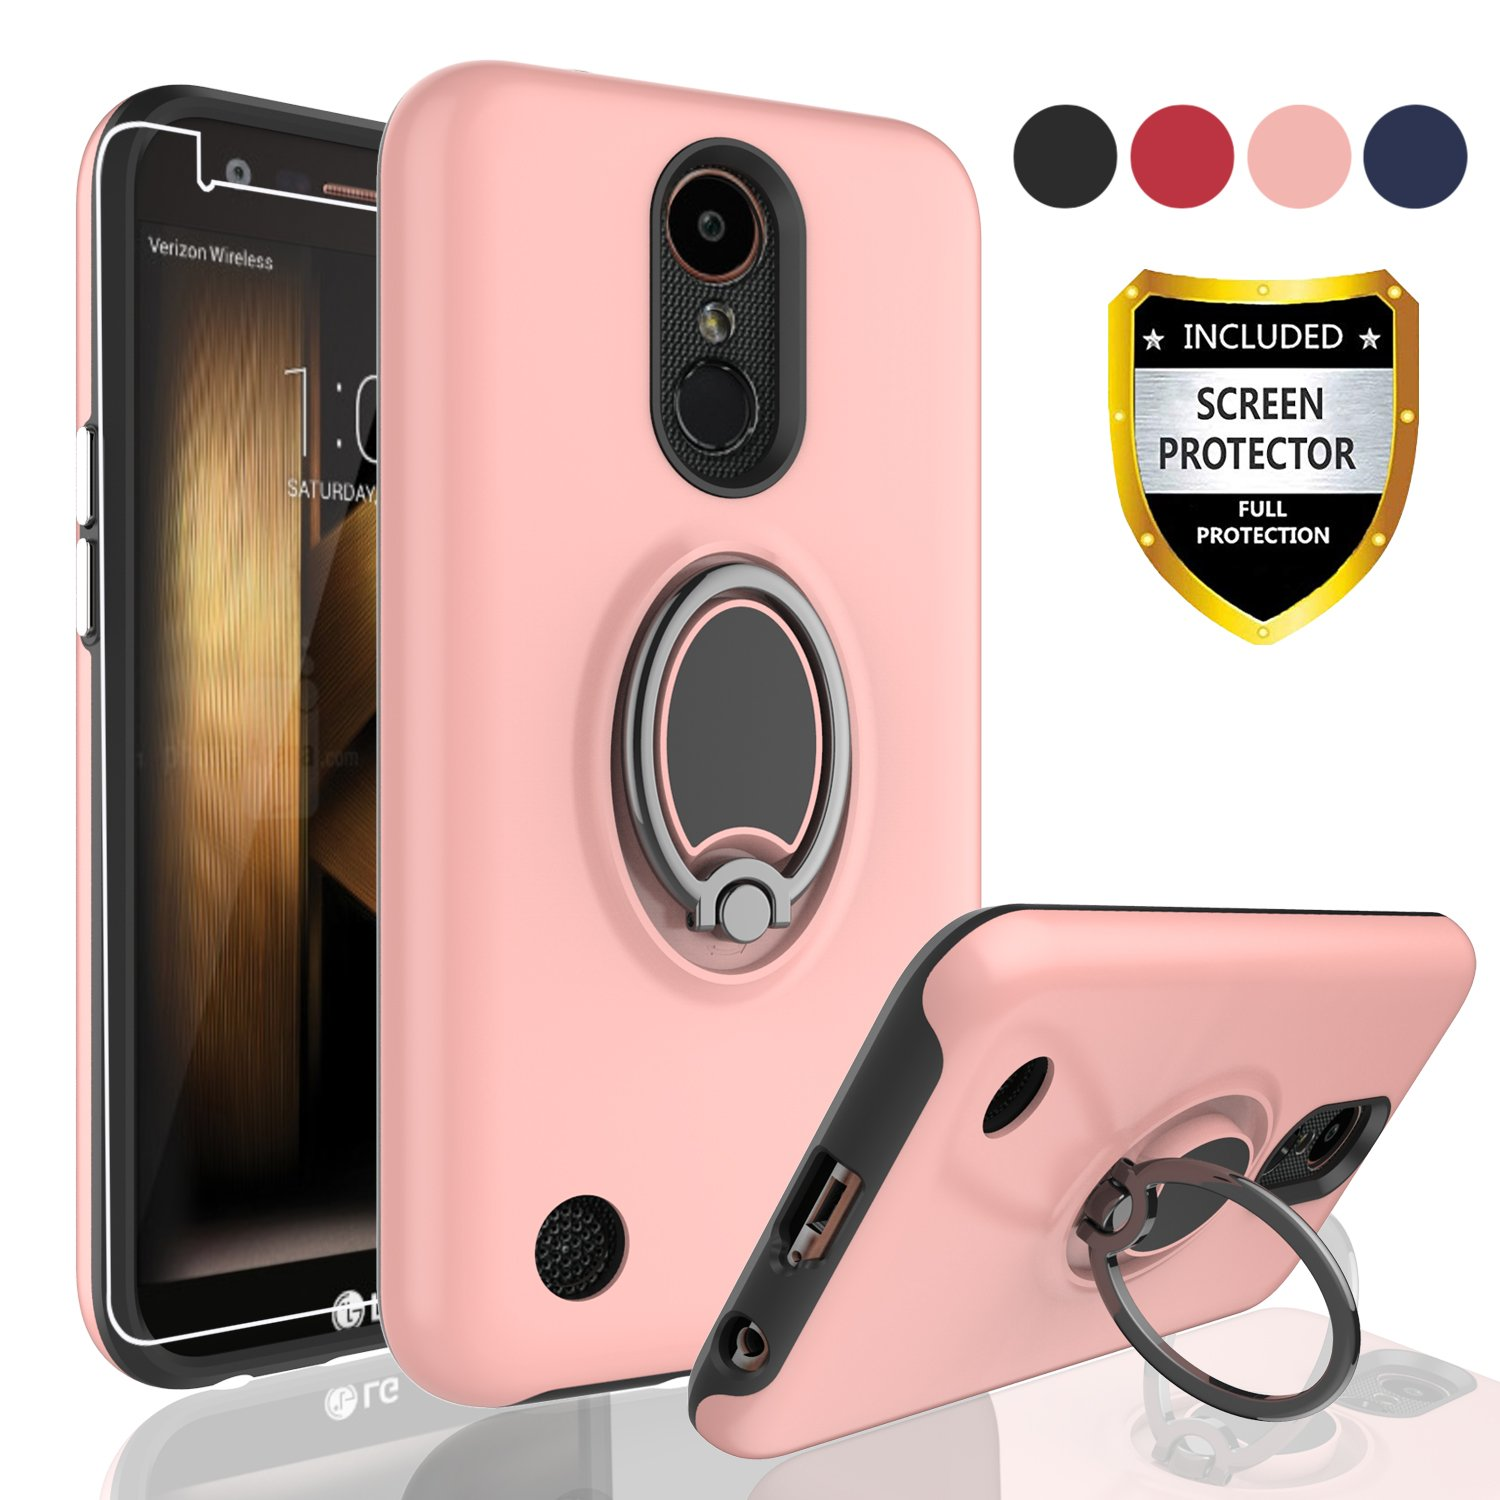 AYMECL LG K20 Plus Phones Cases,LG Harmony/LG K20/LG K20V/LG VS501/LG K10 2017/LG Grace LTE Case with HD Screen Protector,Rotating Ring Holder Dual Layer Shock Bumper Cover for LG LV5-GH Rose Gold